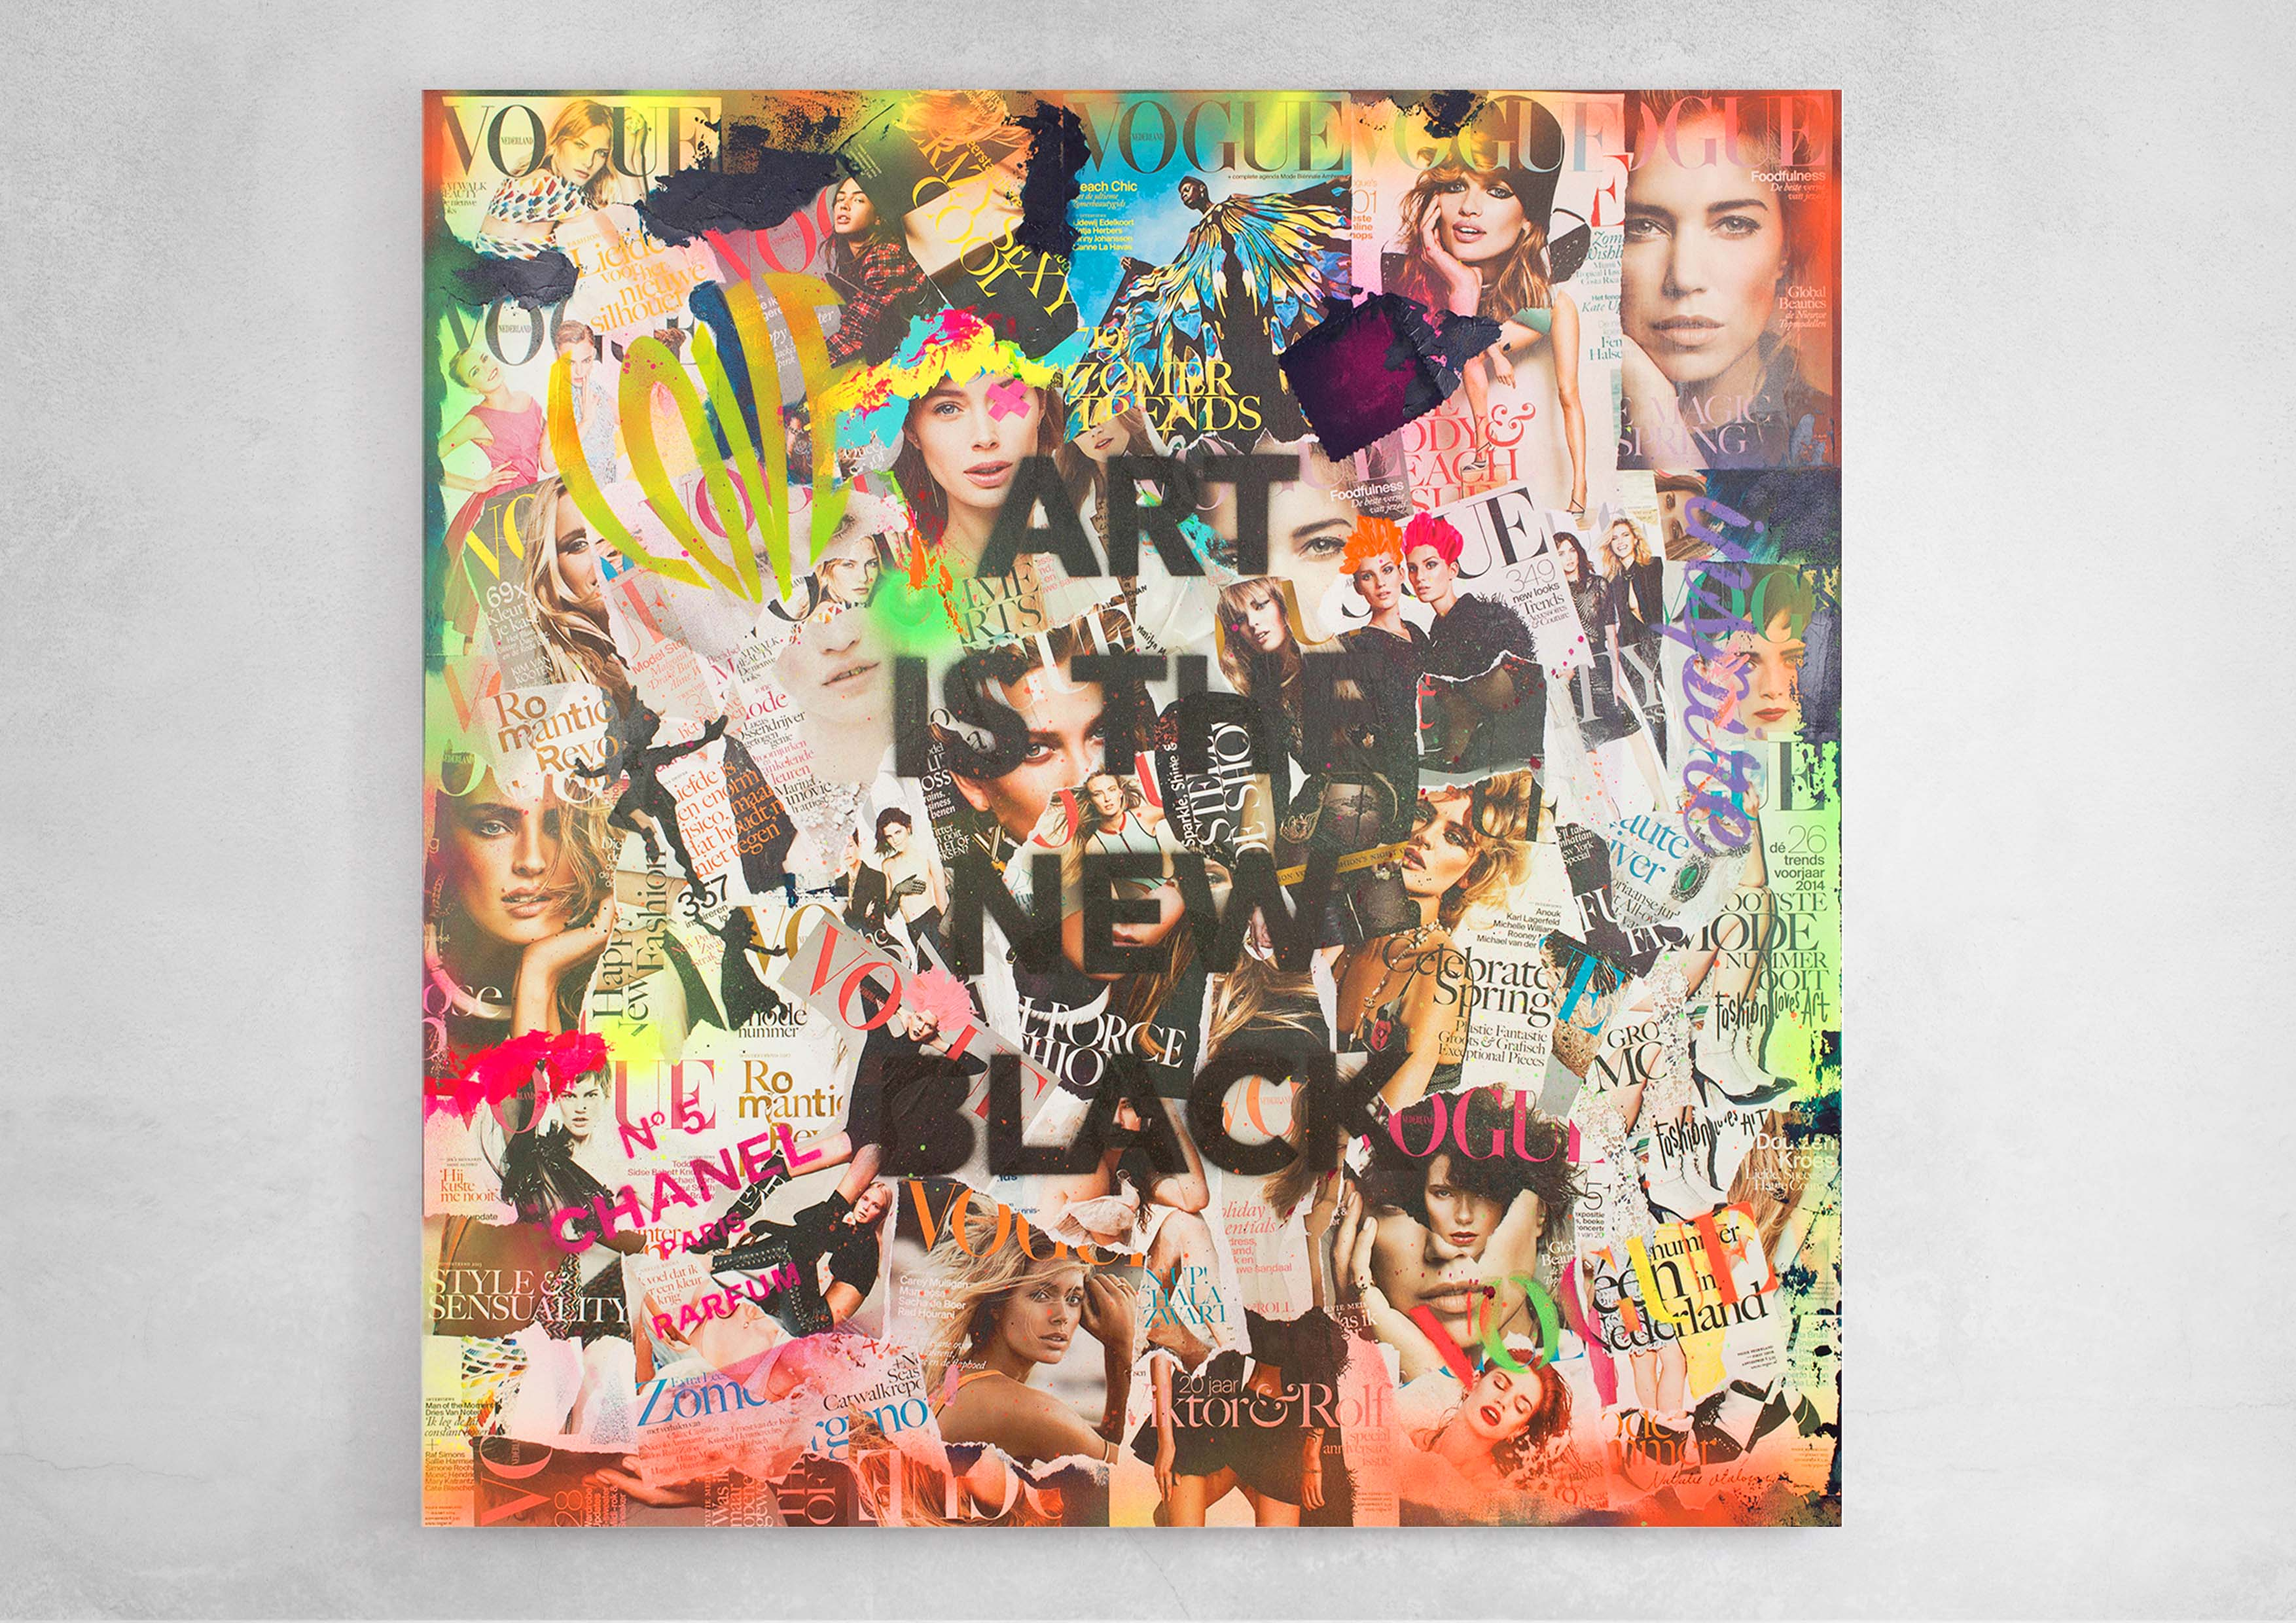 ART_MIXED-MEDIA_COLLAGE_FASHIONABLE_SOUP_CANVAS_ON_WALL